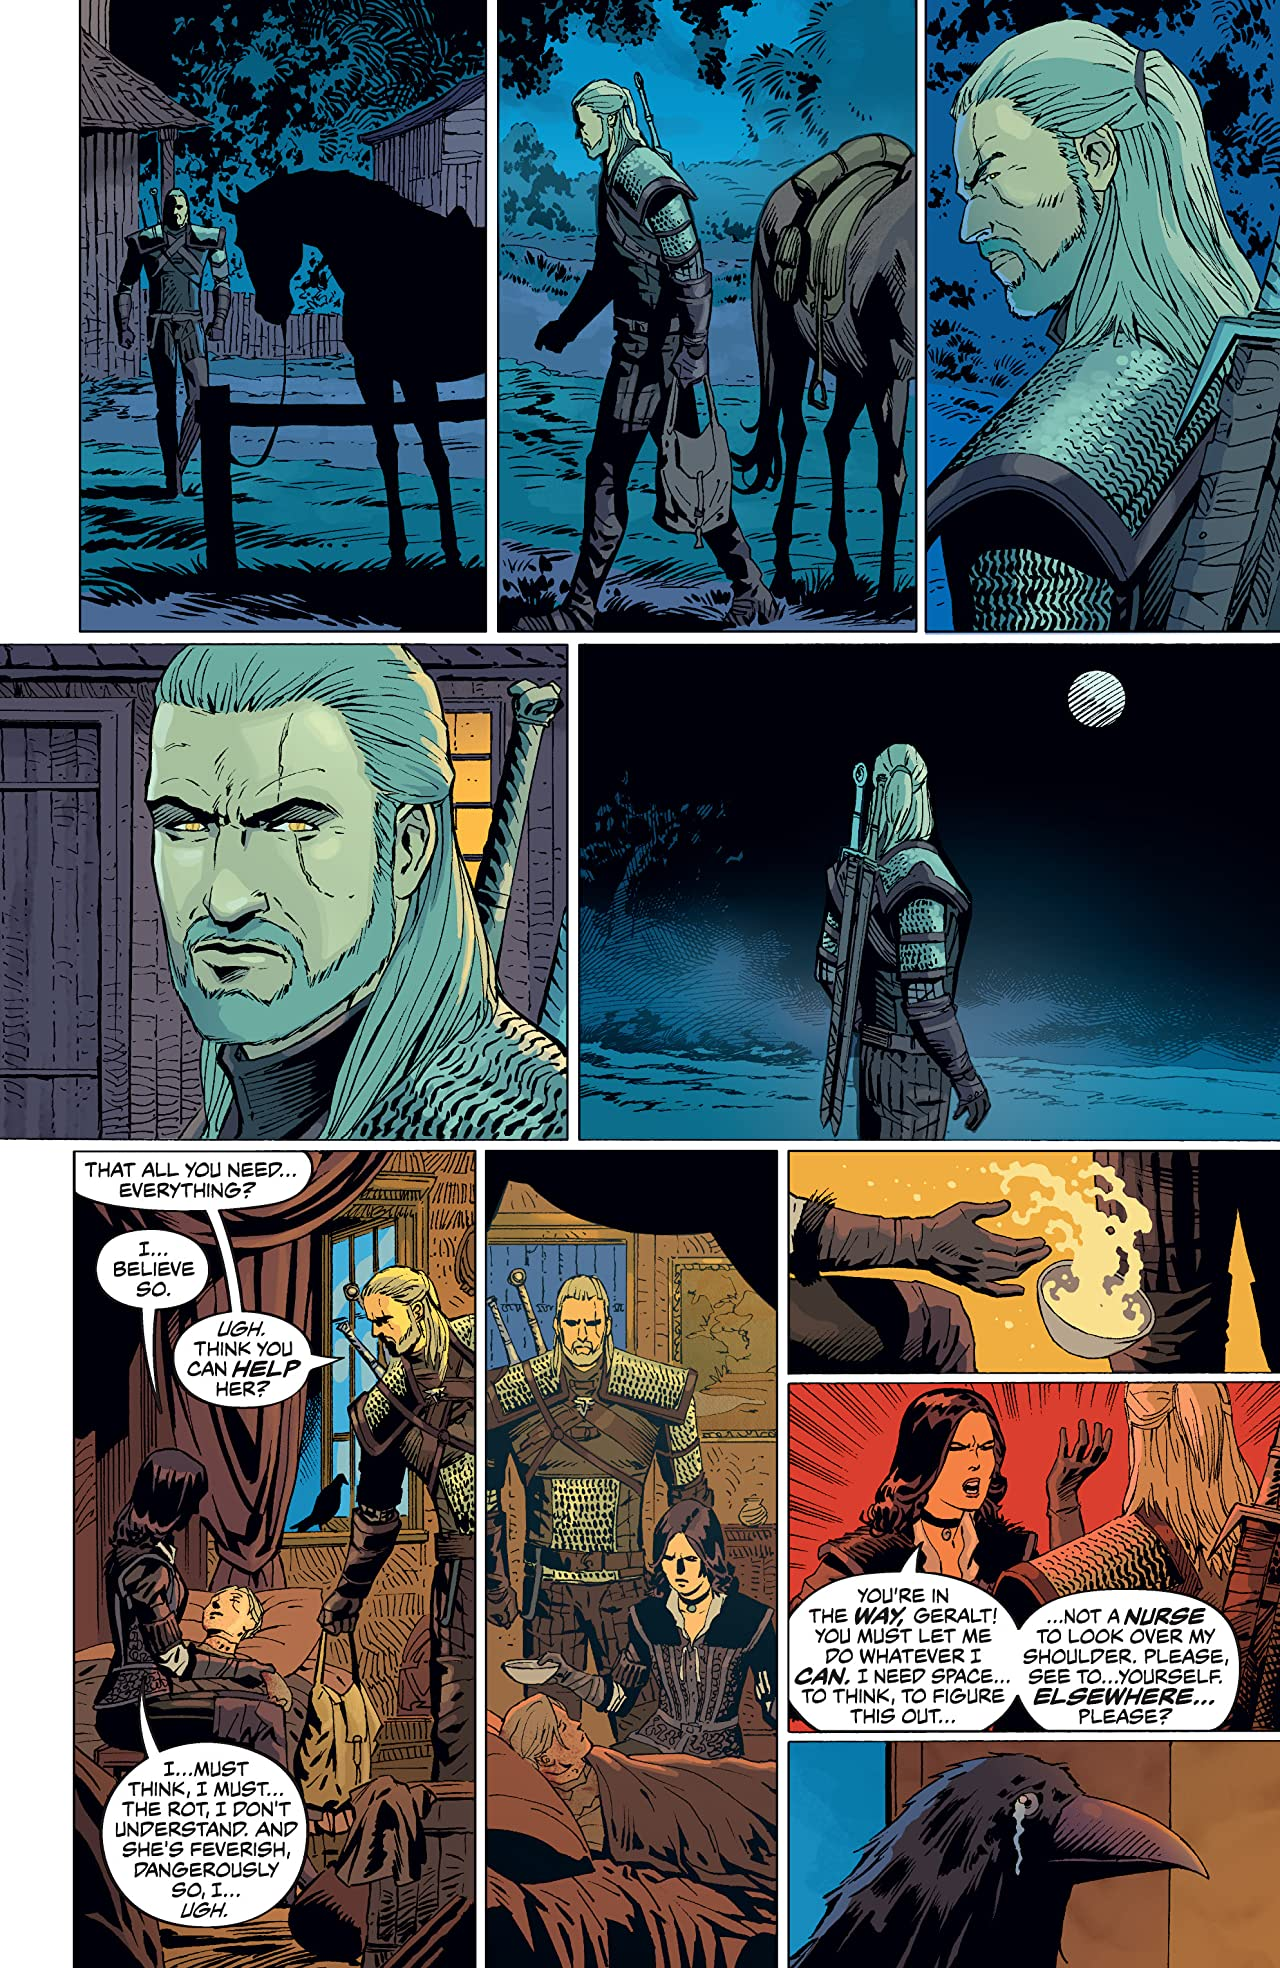 The Witcher: Curse of Crows #5